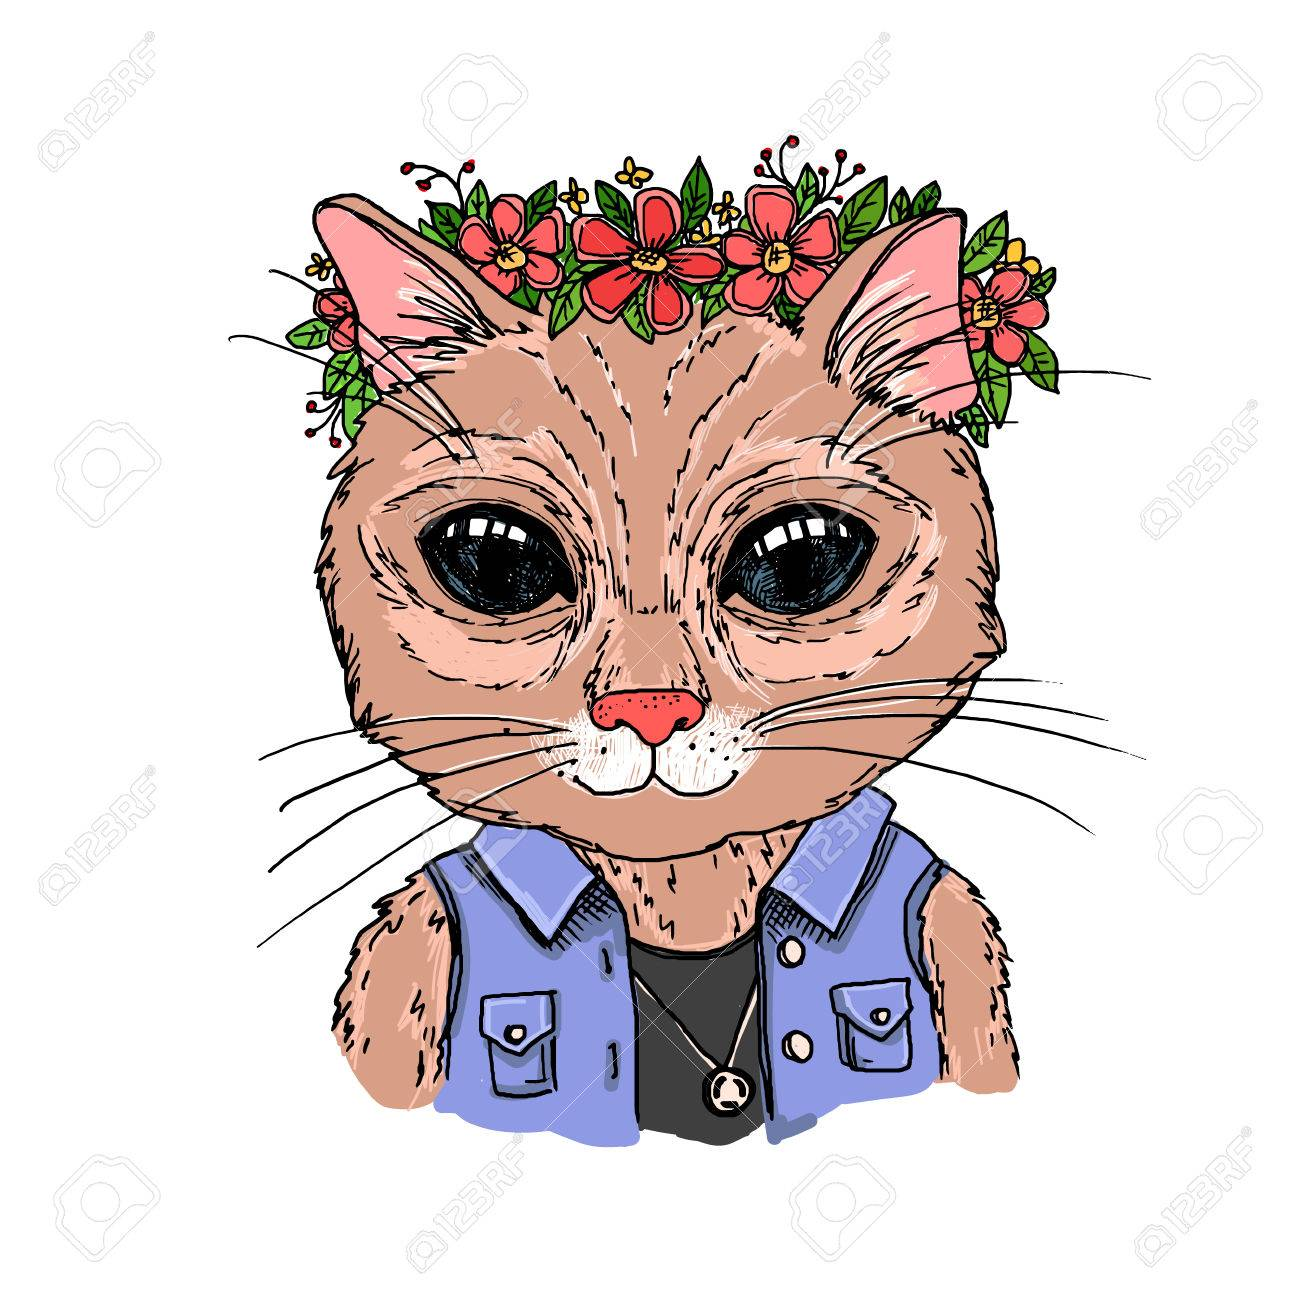 Isolated On White Background Hand Drawn Vector Illustration Hipster Cat With Wreath Of Flowers Vintage